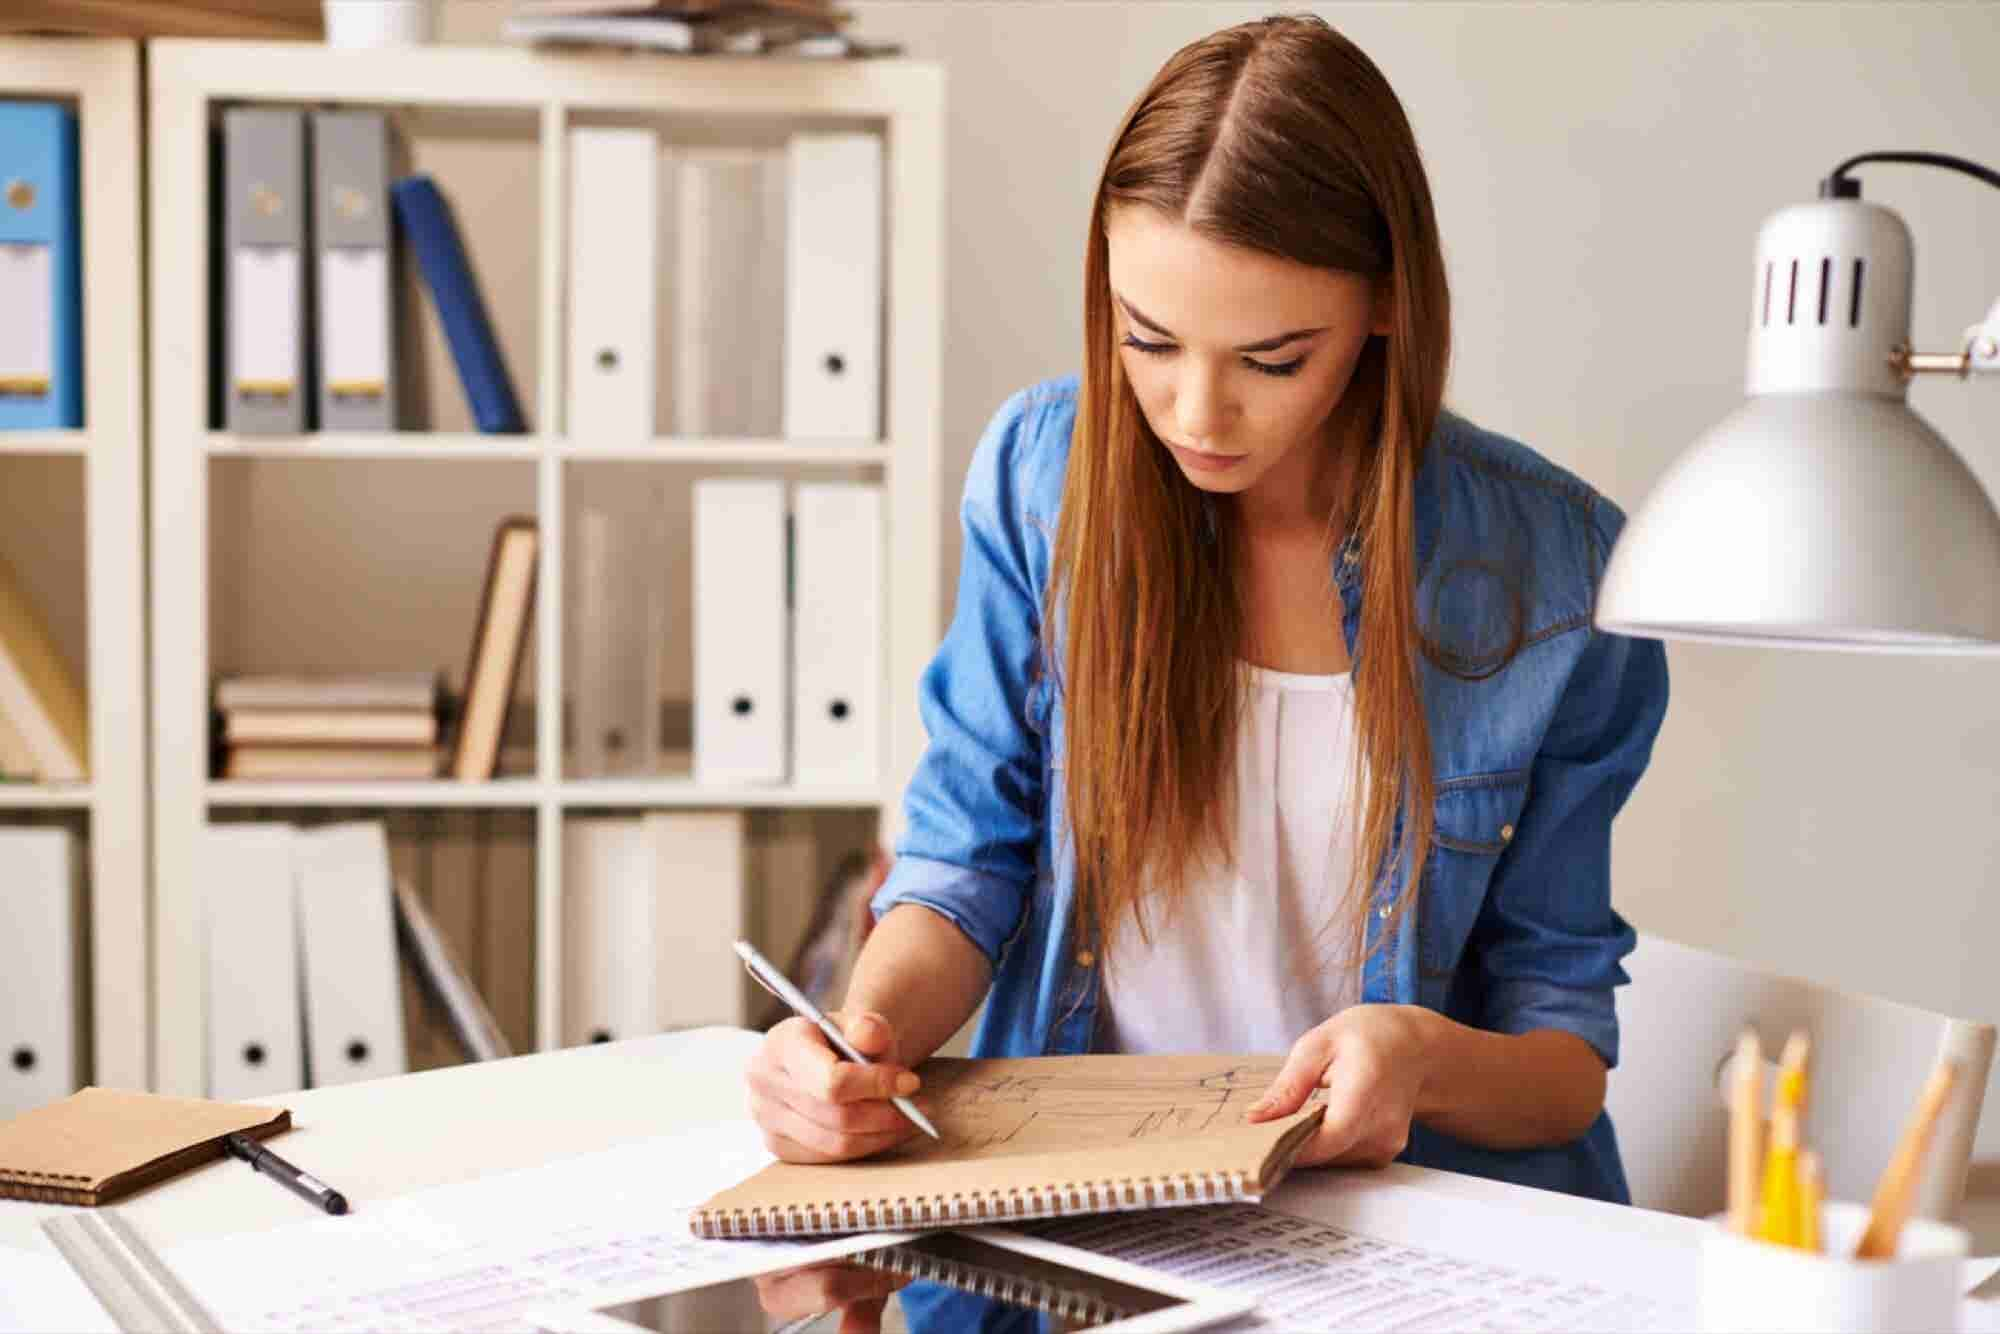 8 Tips for Entrepreneurial High School Students Ready to Start Their First Businesses